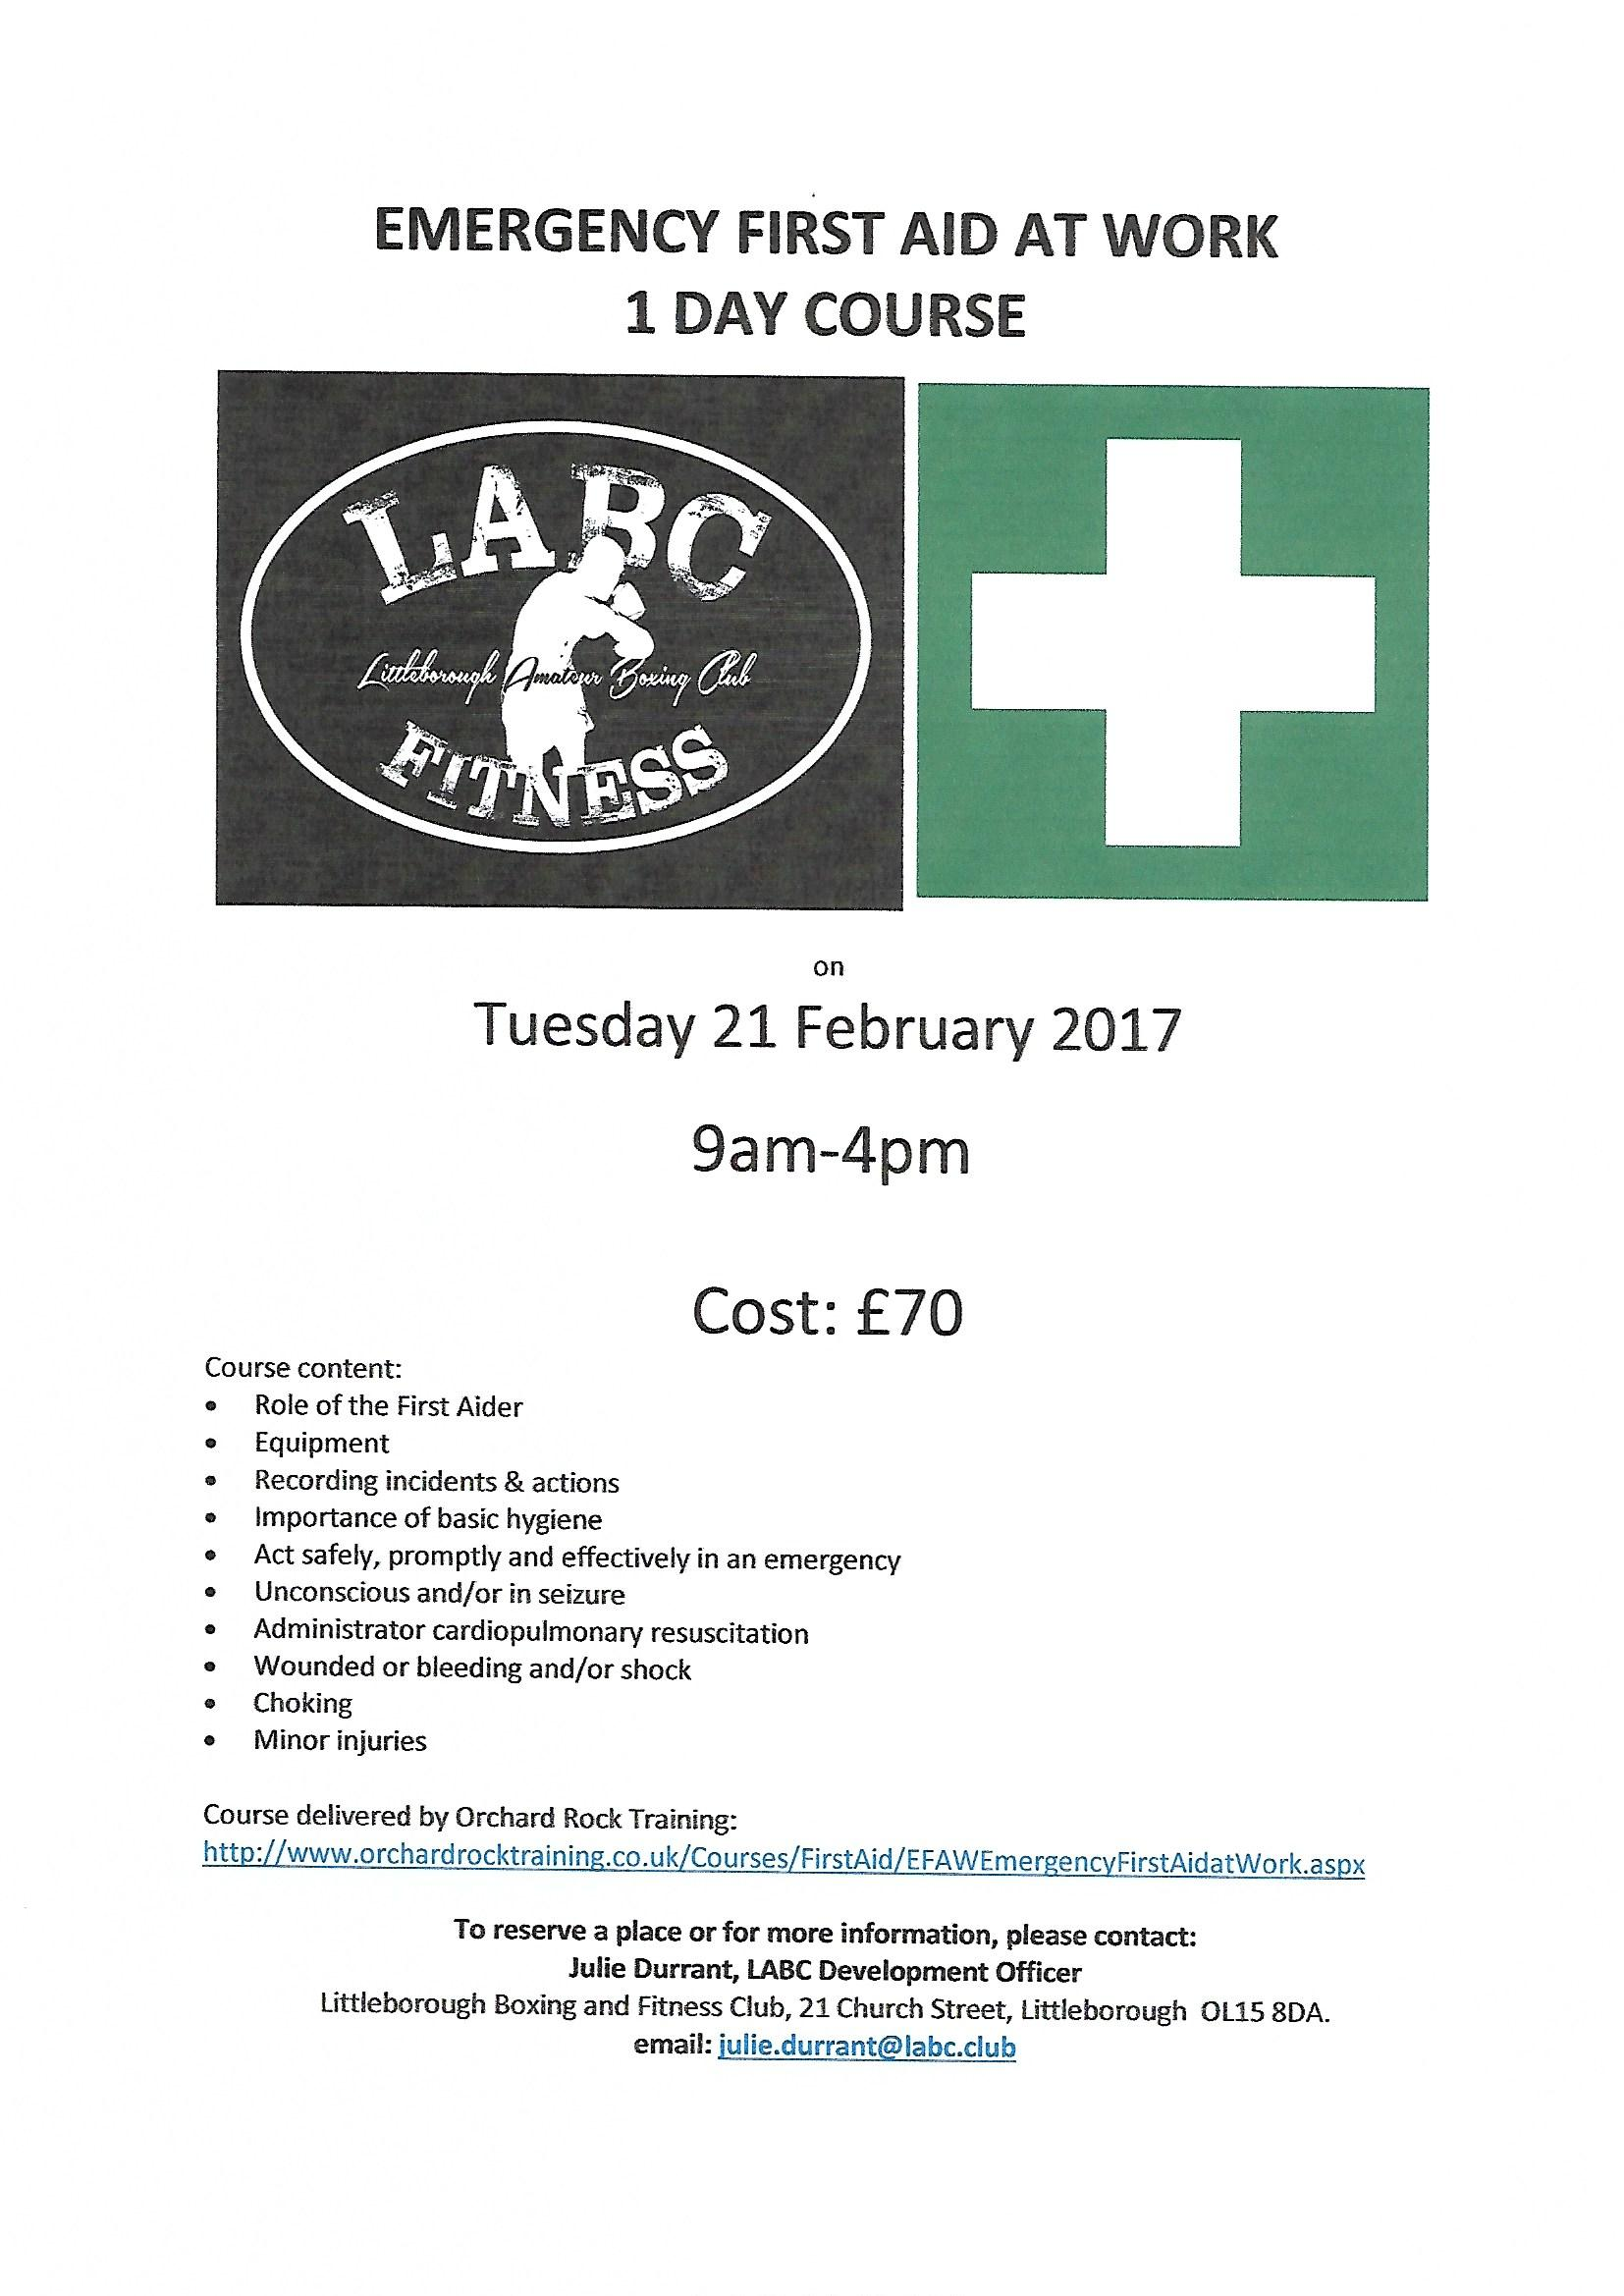 Littleborough Boxing & Fitness Club Emergency First Aid